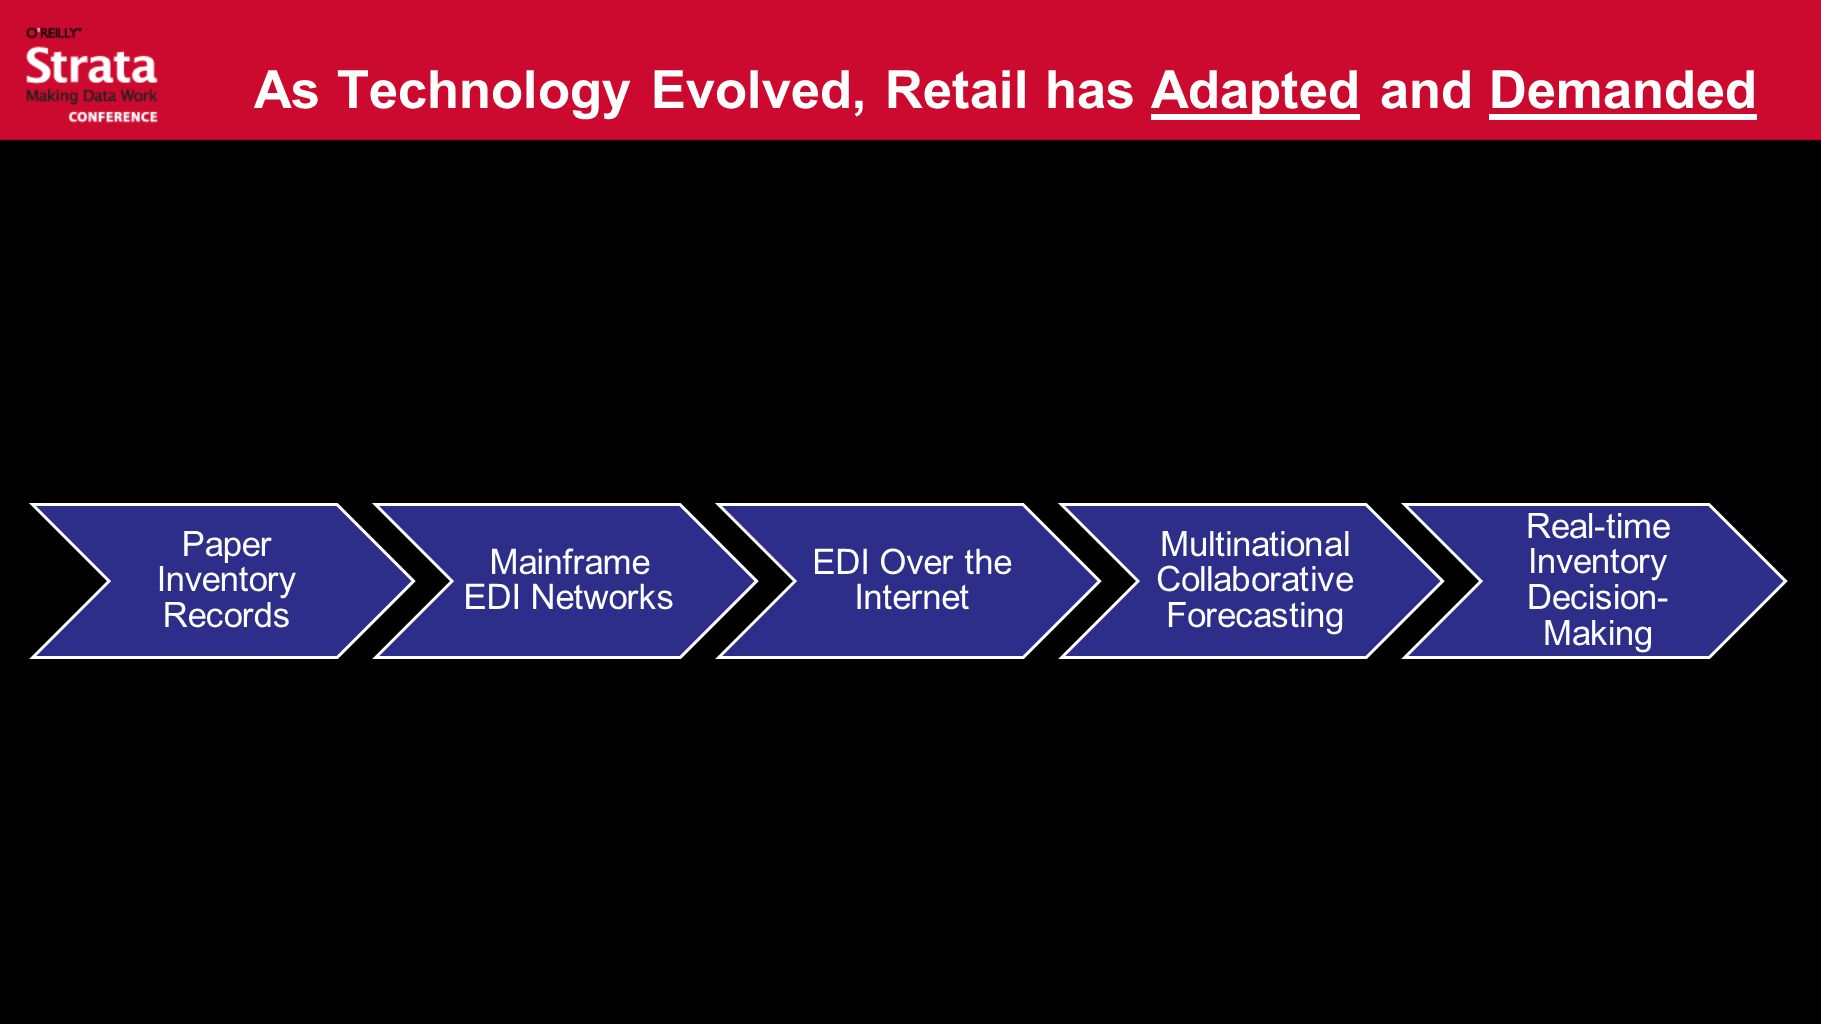 As Technology Evolved, Retail has Adapted and Demanded Paper Inventory Records Mainframe EDI Networks EDI Over the Internet Multinational Collaborative Forecasting Real-time Inventory Decision- Making